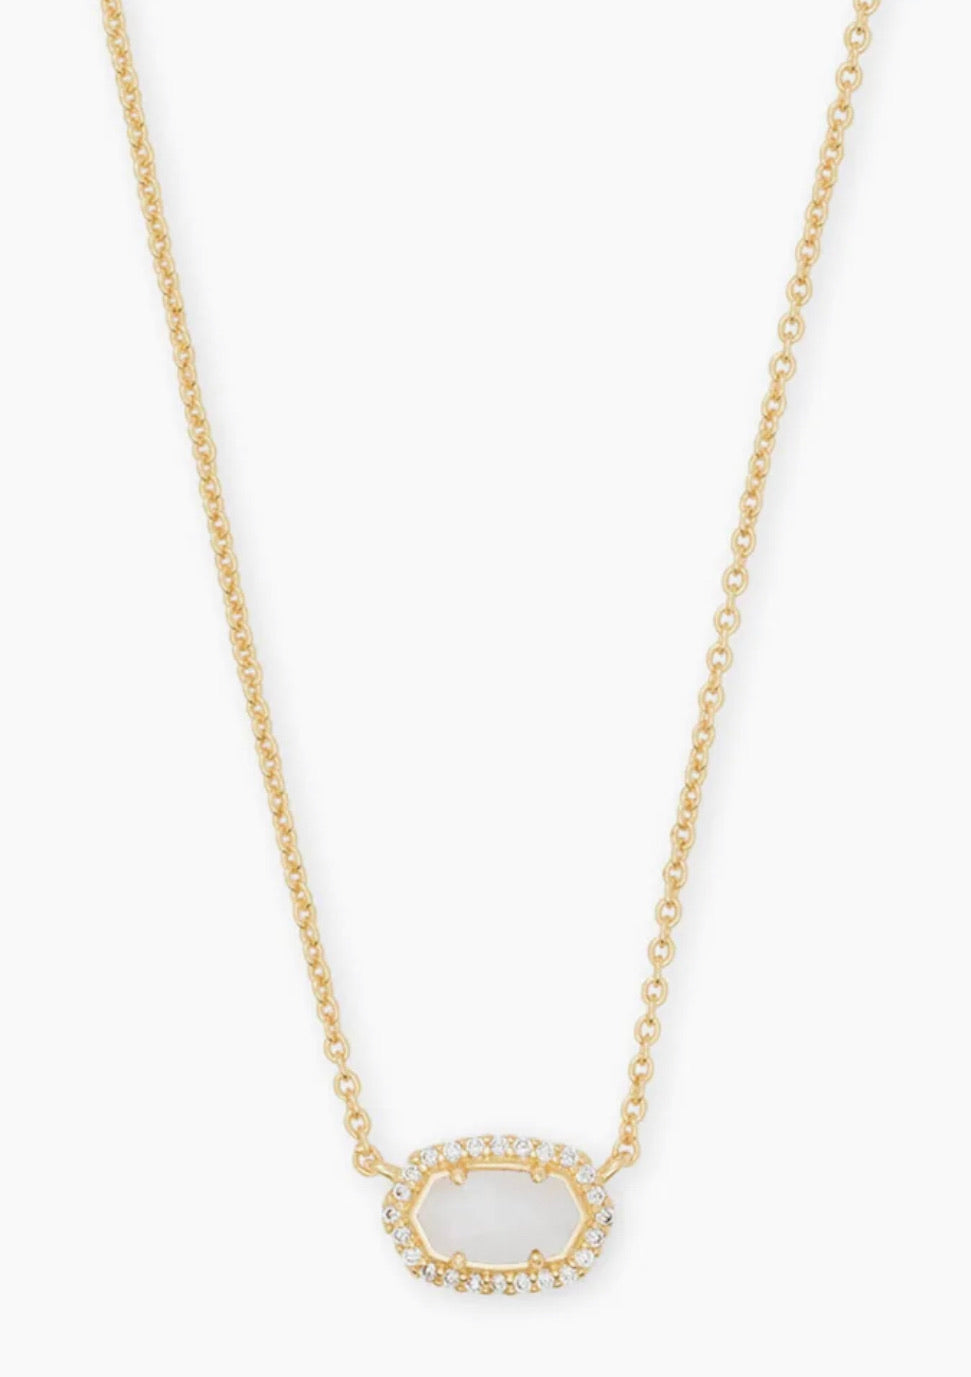 Kendra Scott Chelsea Pendant Necklace In Ivory Pearl *multiple colors available